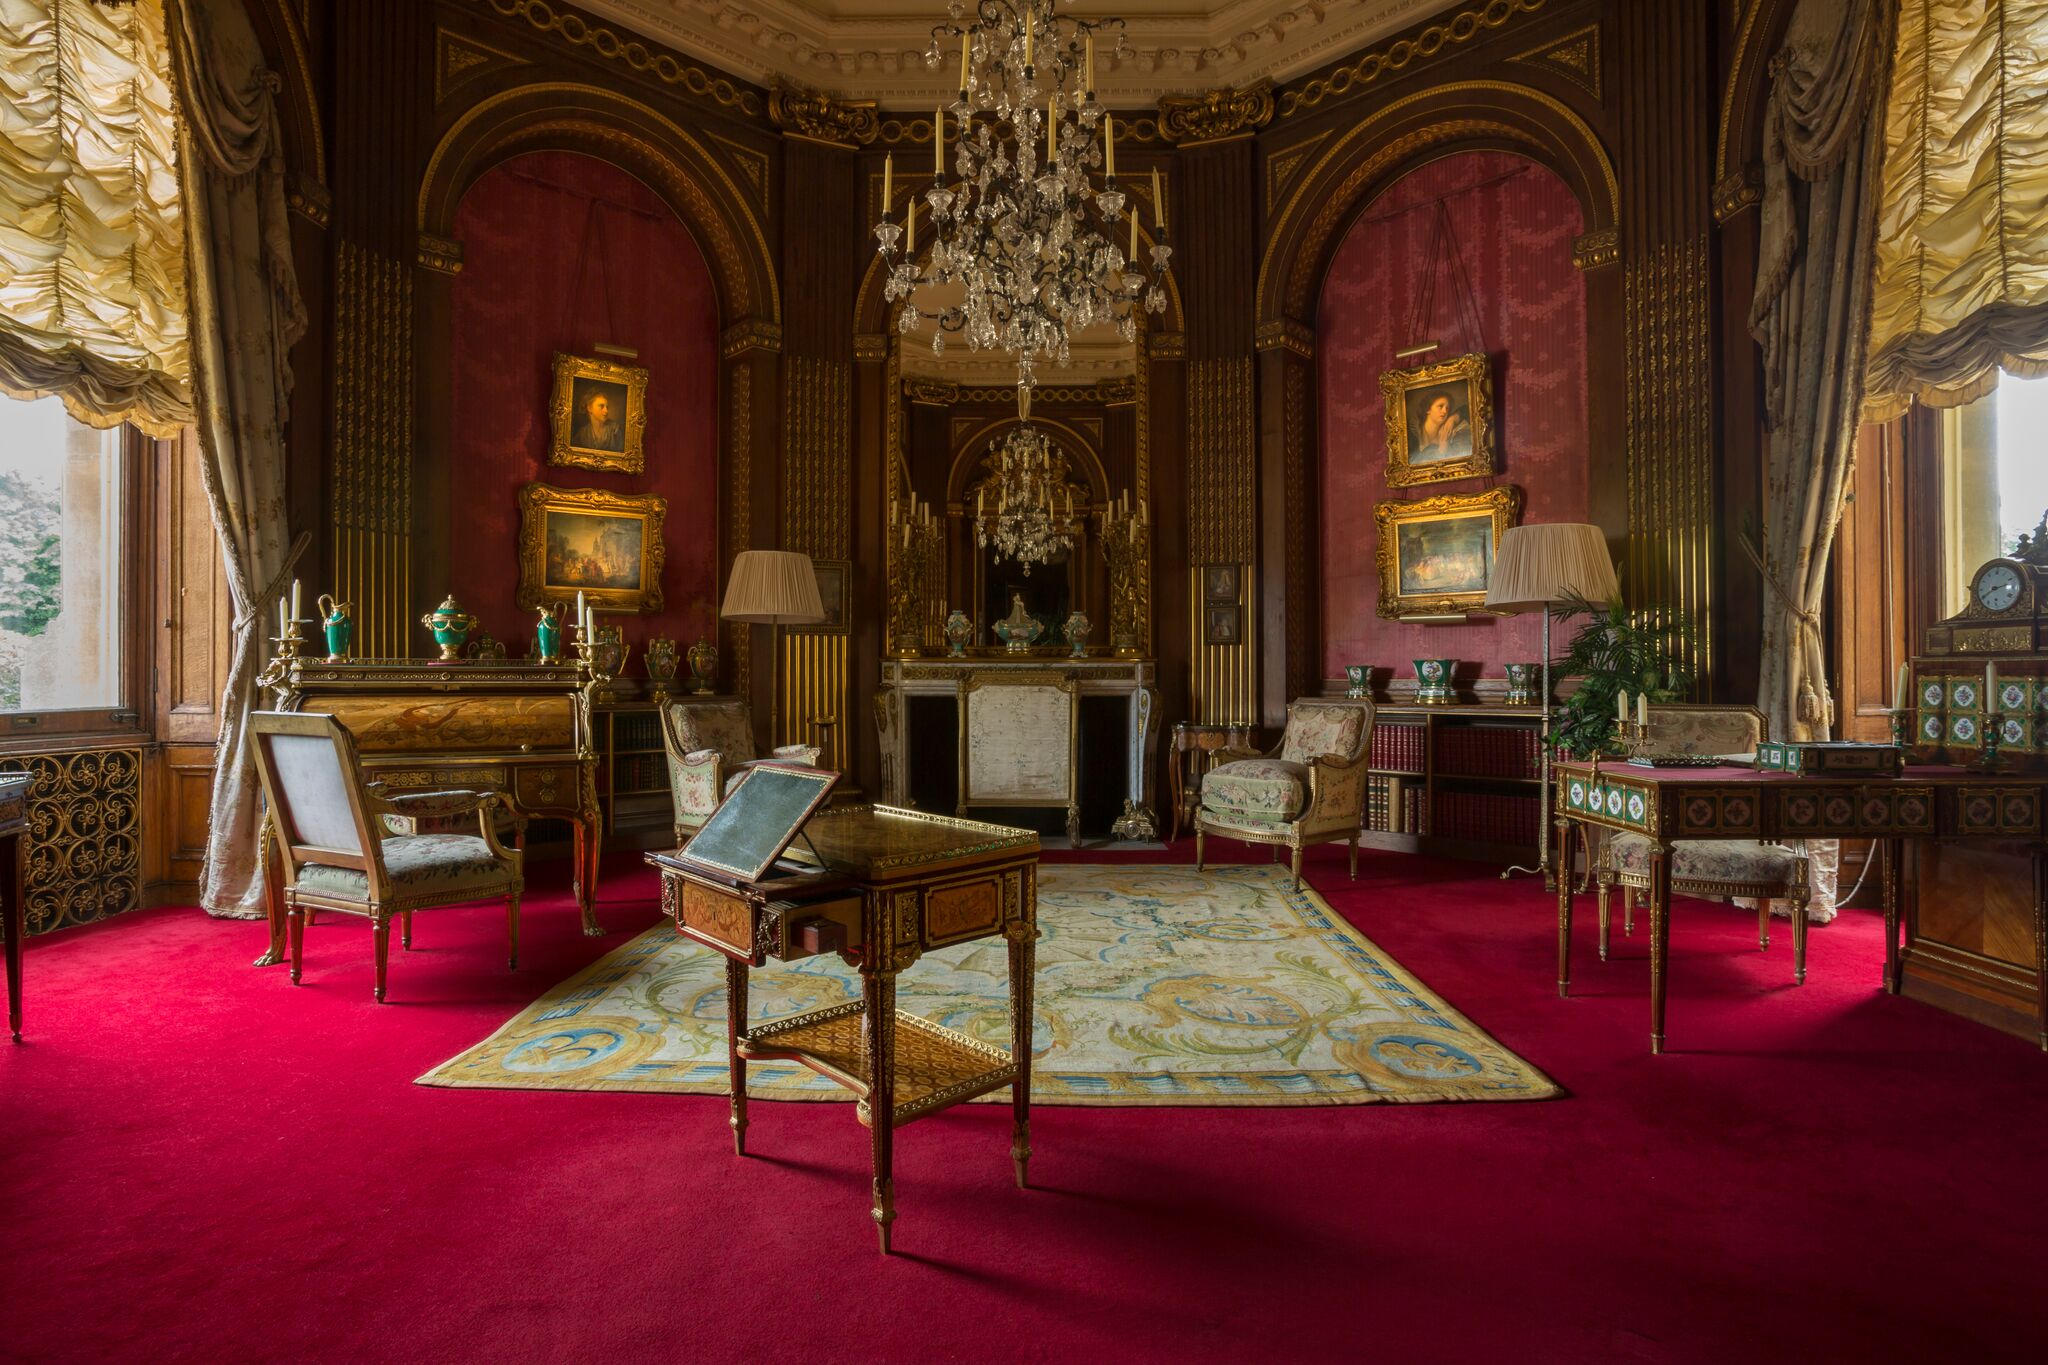 The Tower Drawing Room at Waddesdon Manor. (Chris Lacey (c) National Trust Waddesdon Manor)